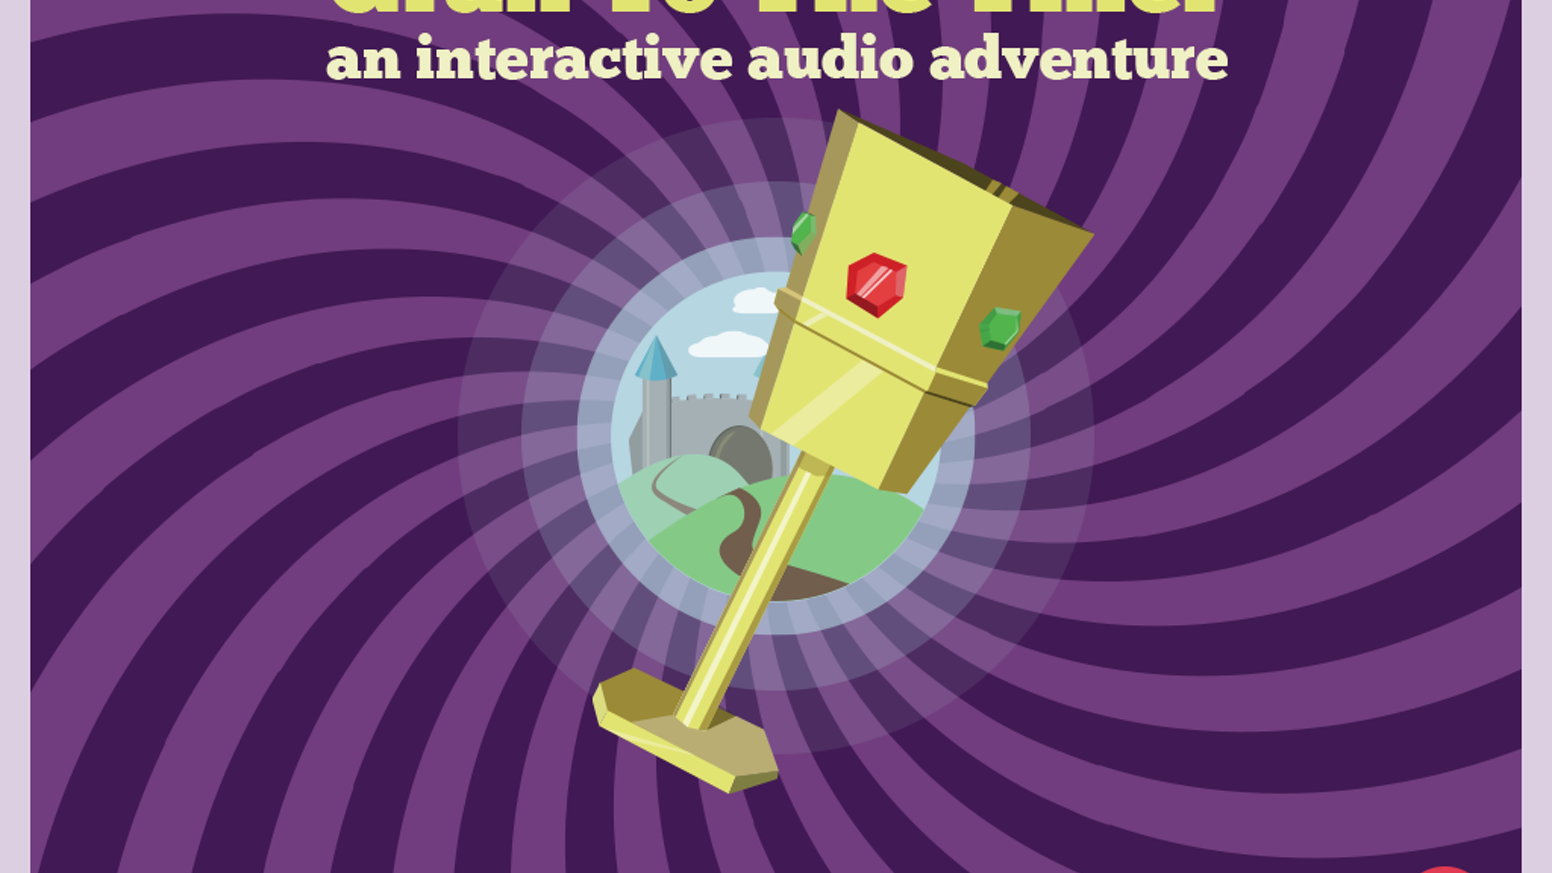 Grail to the Thief is an interactive audio adventure for the blind and visually impaired.